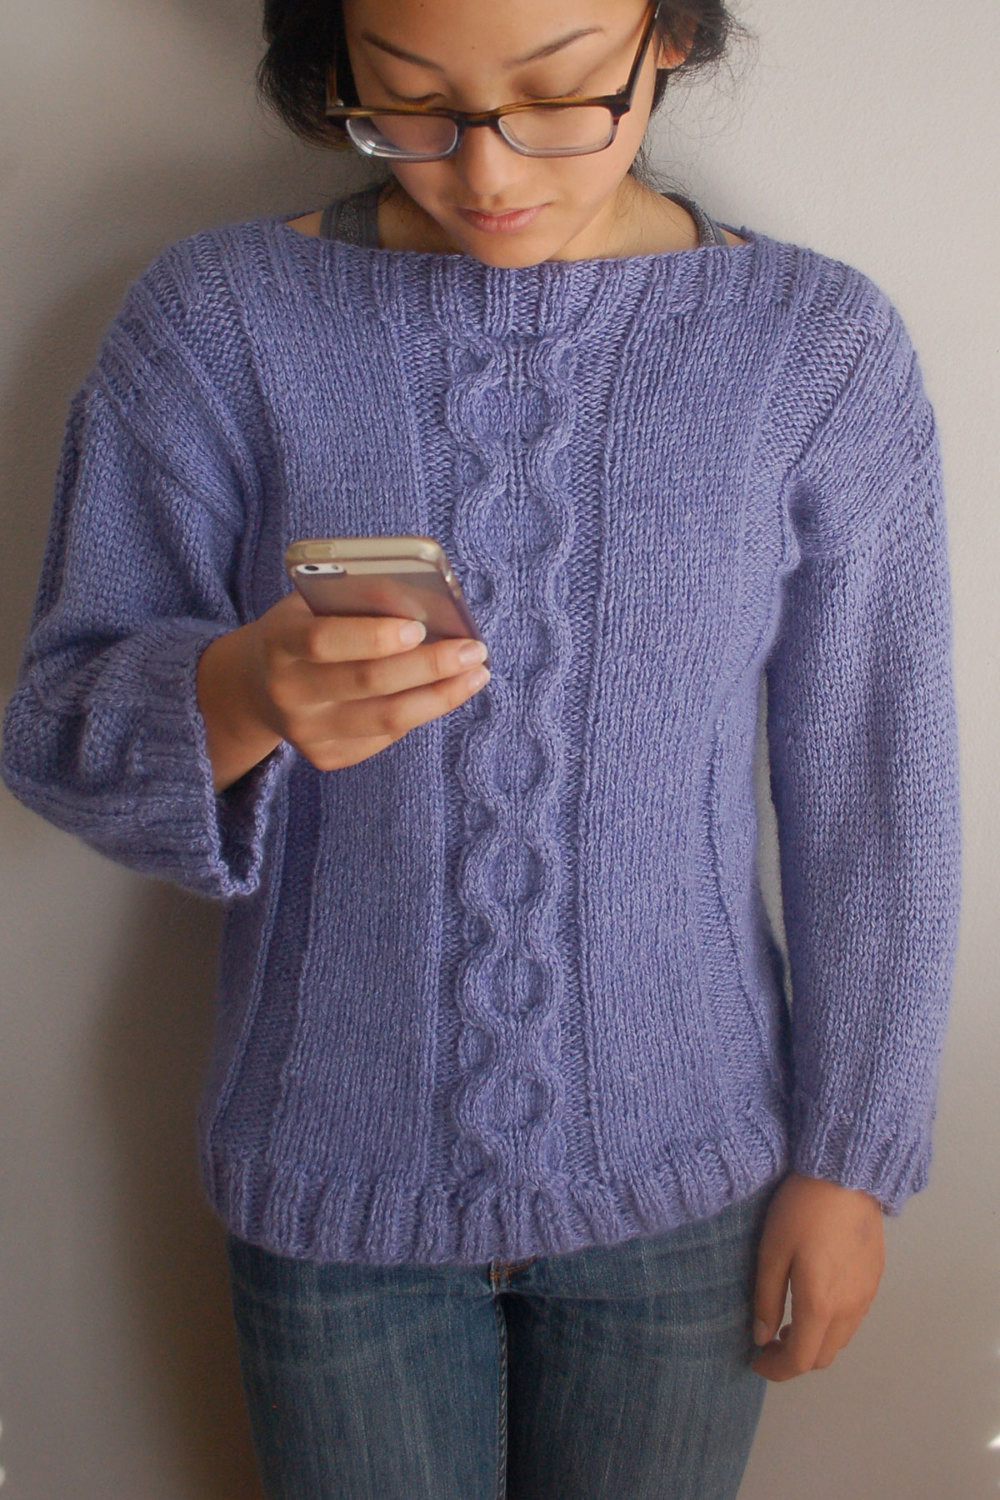 Best Of Cable Sweater Knitting Pattern Easy to Knit Pullover Cable Knitting Patterns Of Beautiful 41 Models Cable Knitting Patterns